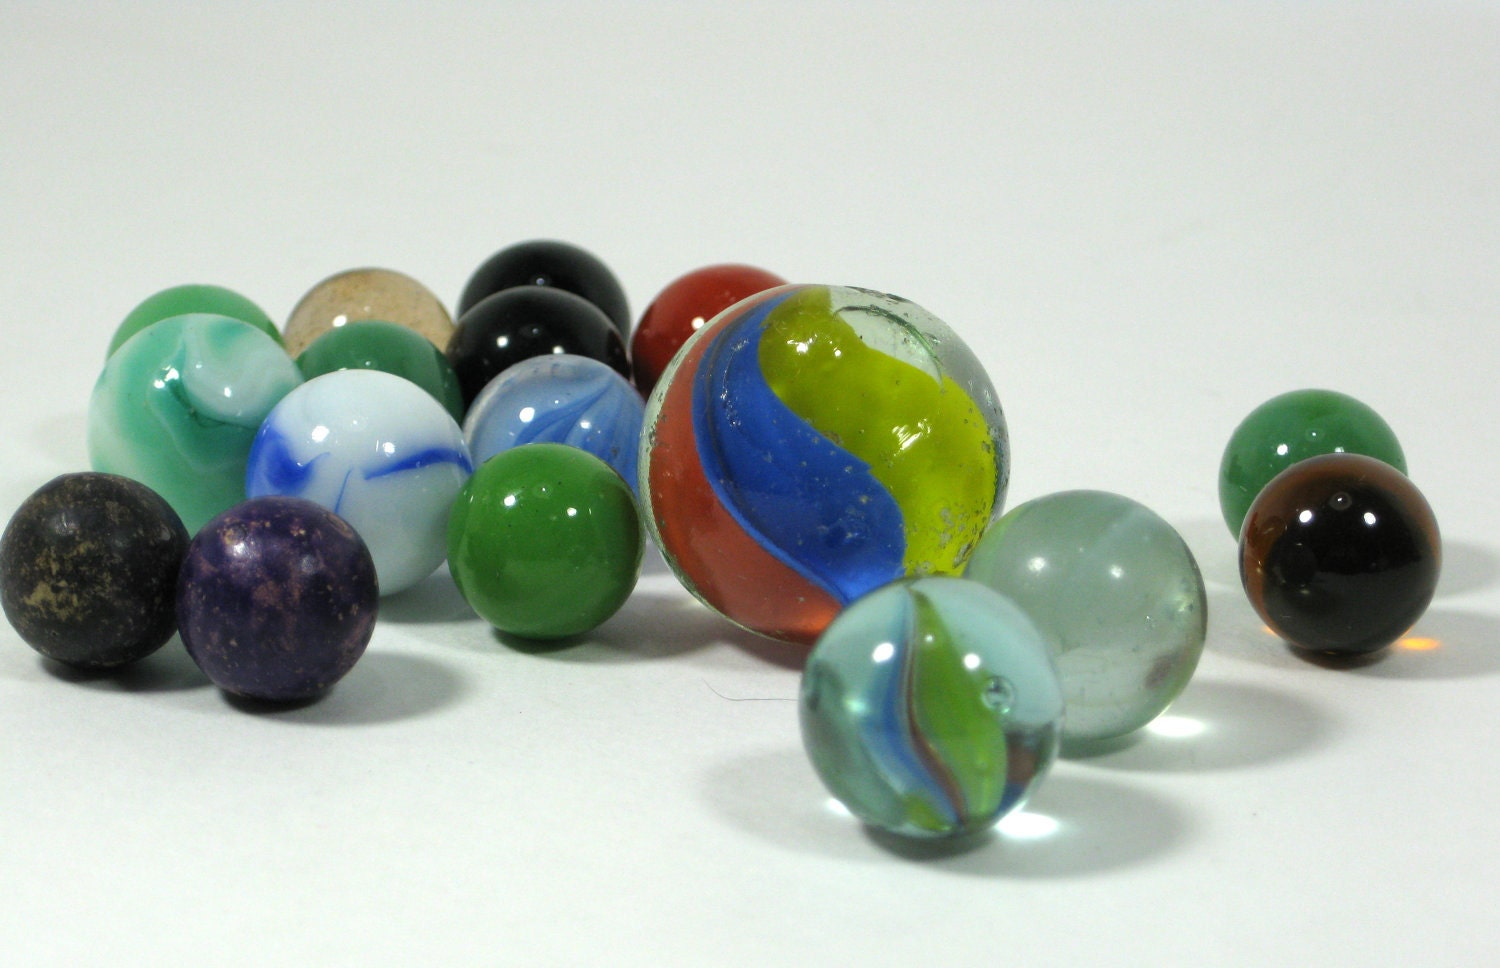 Antique Marbles Vintage Glass And Clay